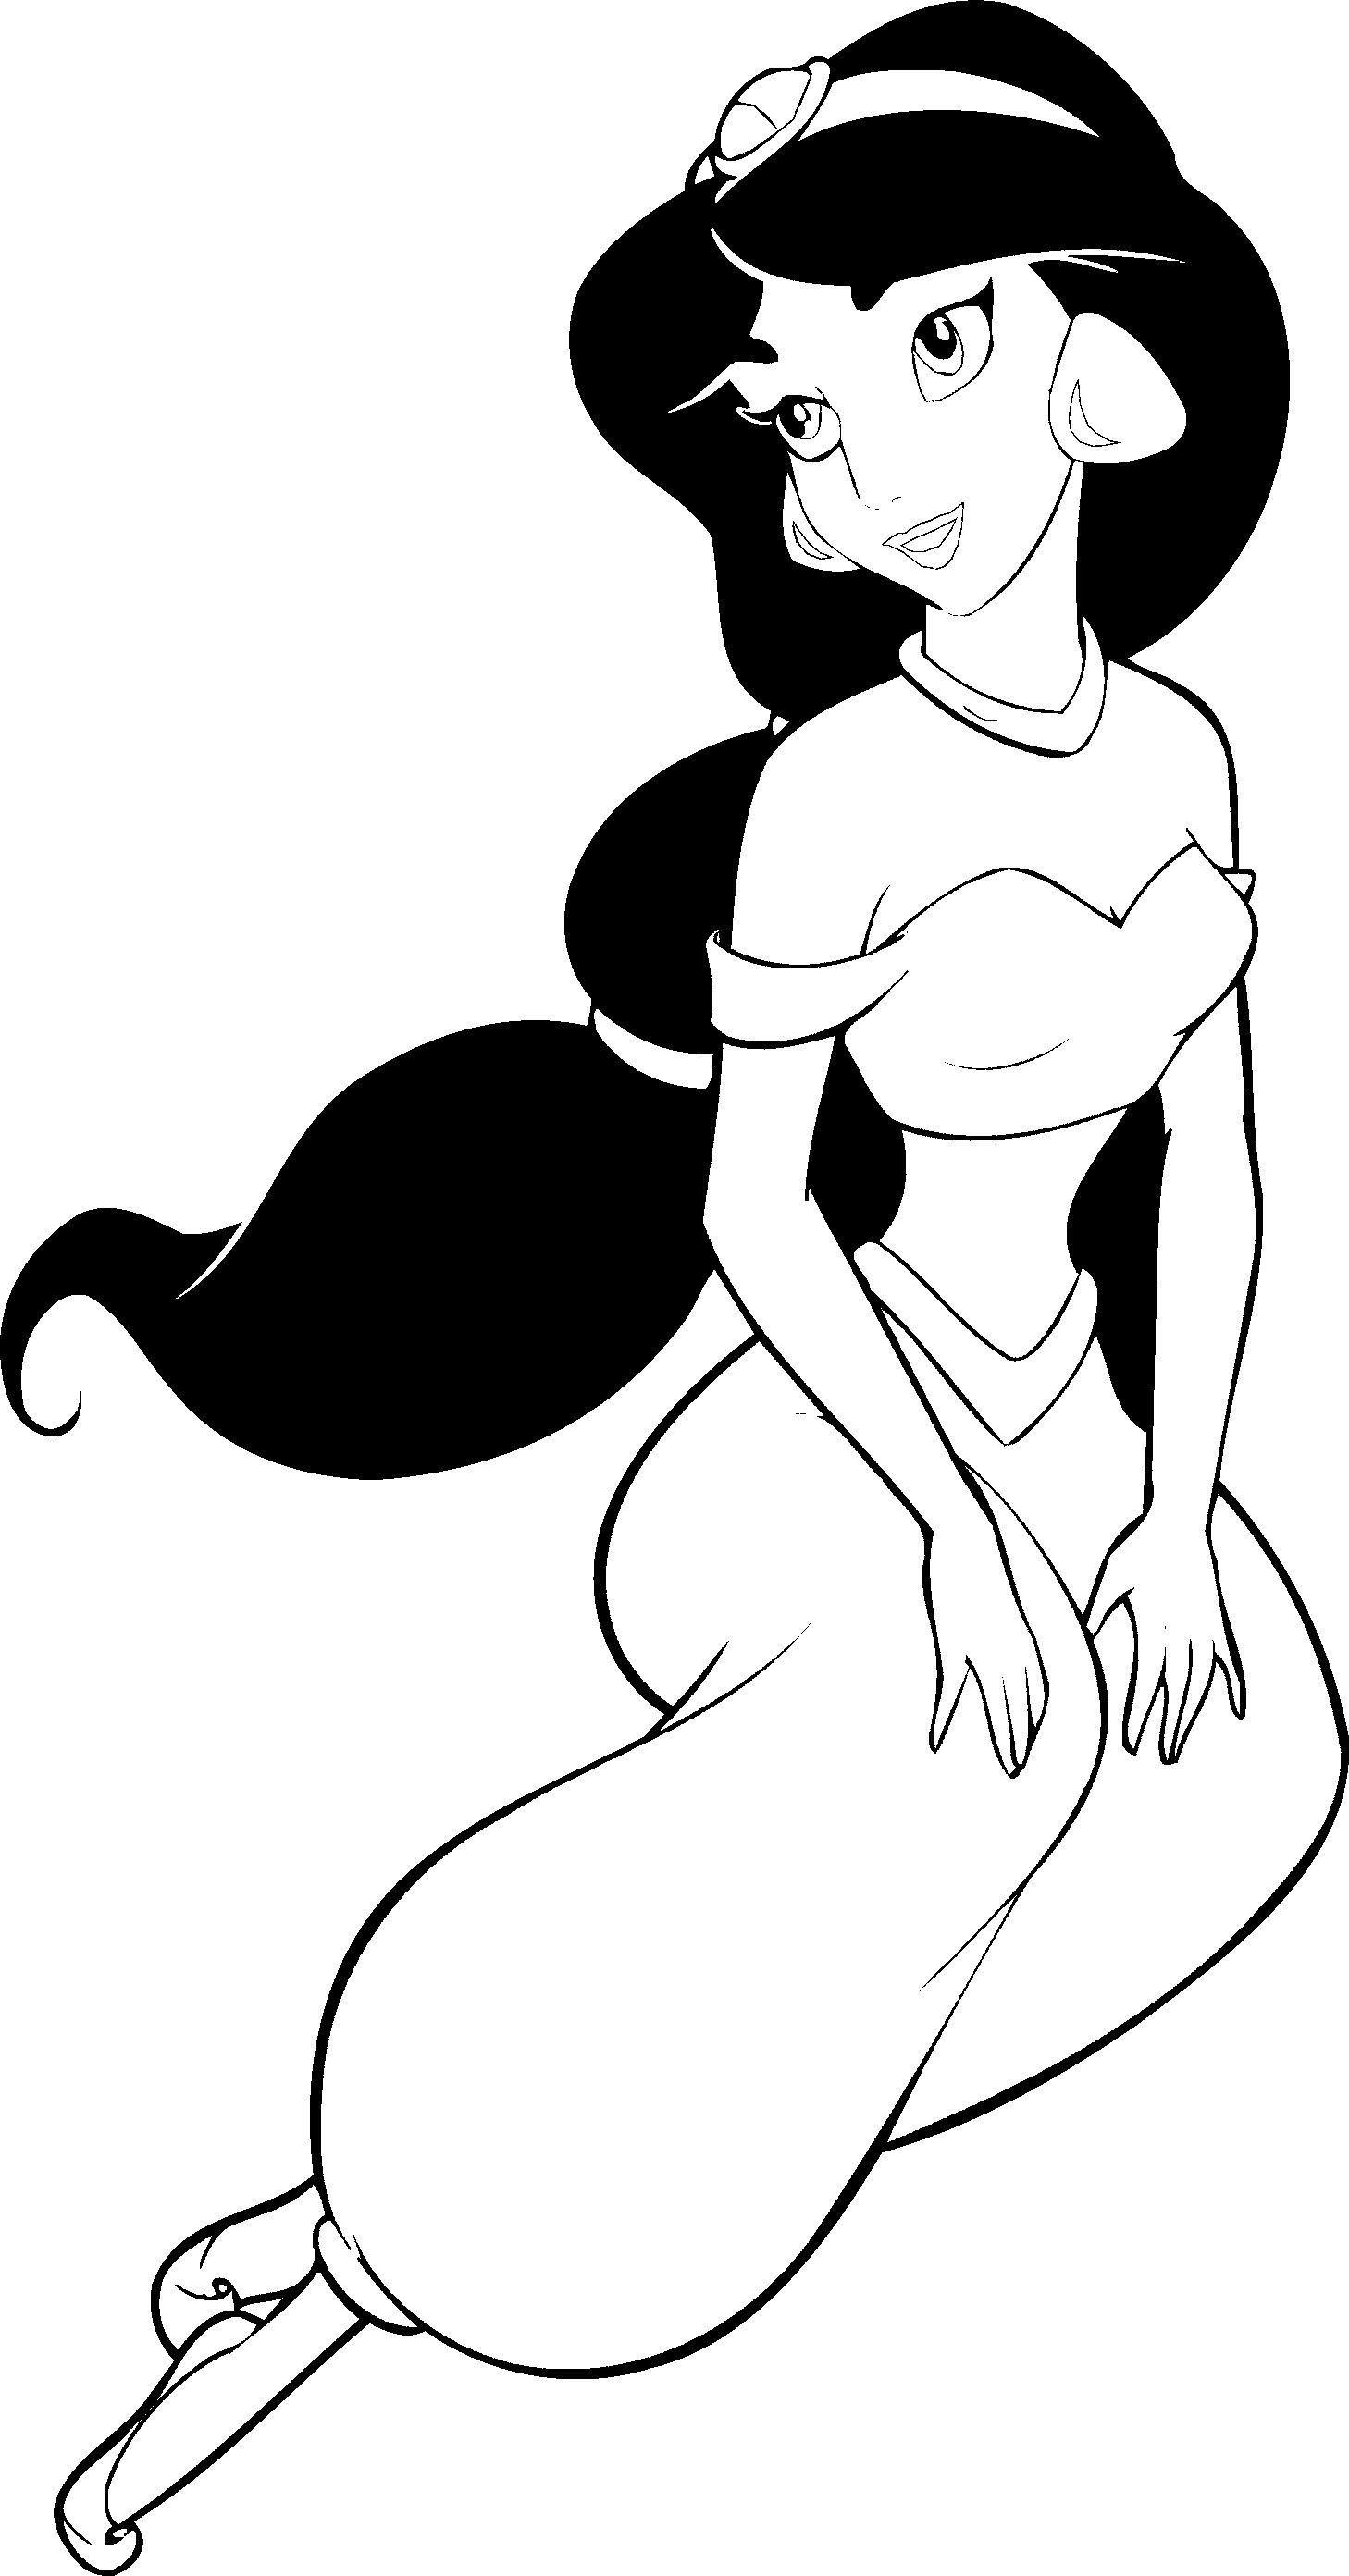 Printable Coloring Pages | Disney Aladdin Princess Jasmine Cartoon ...